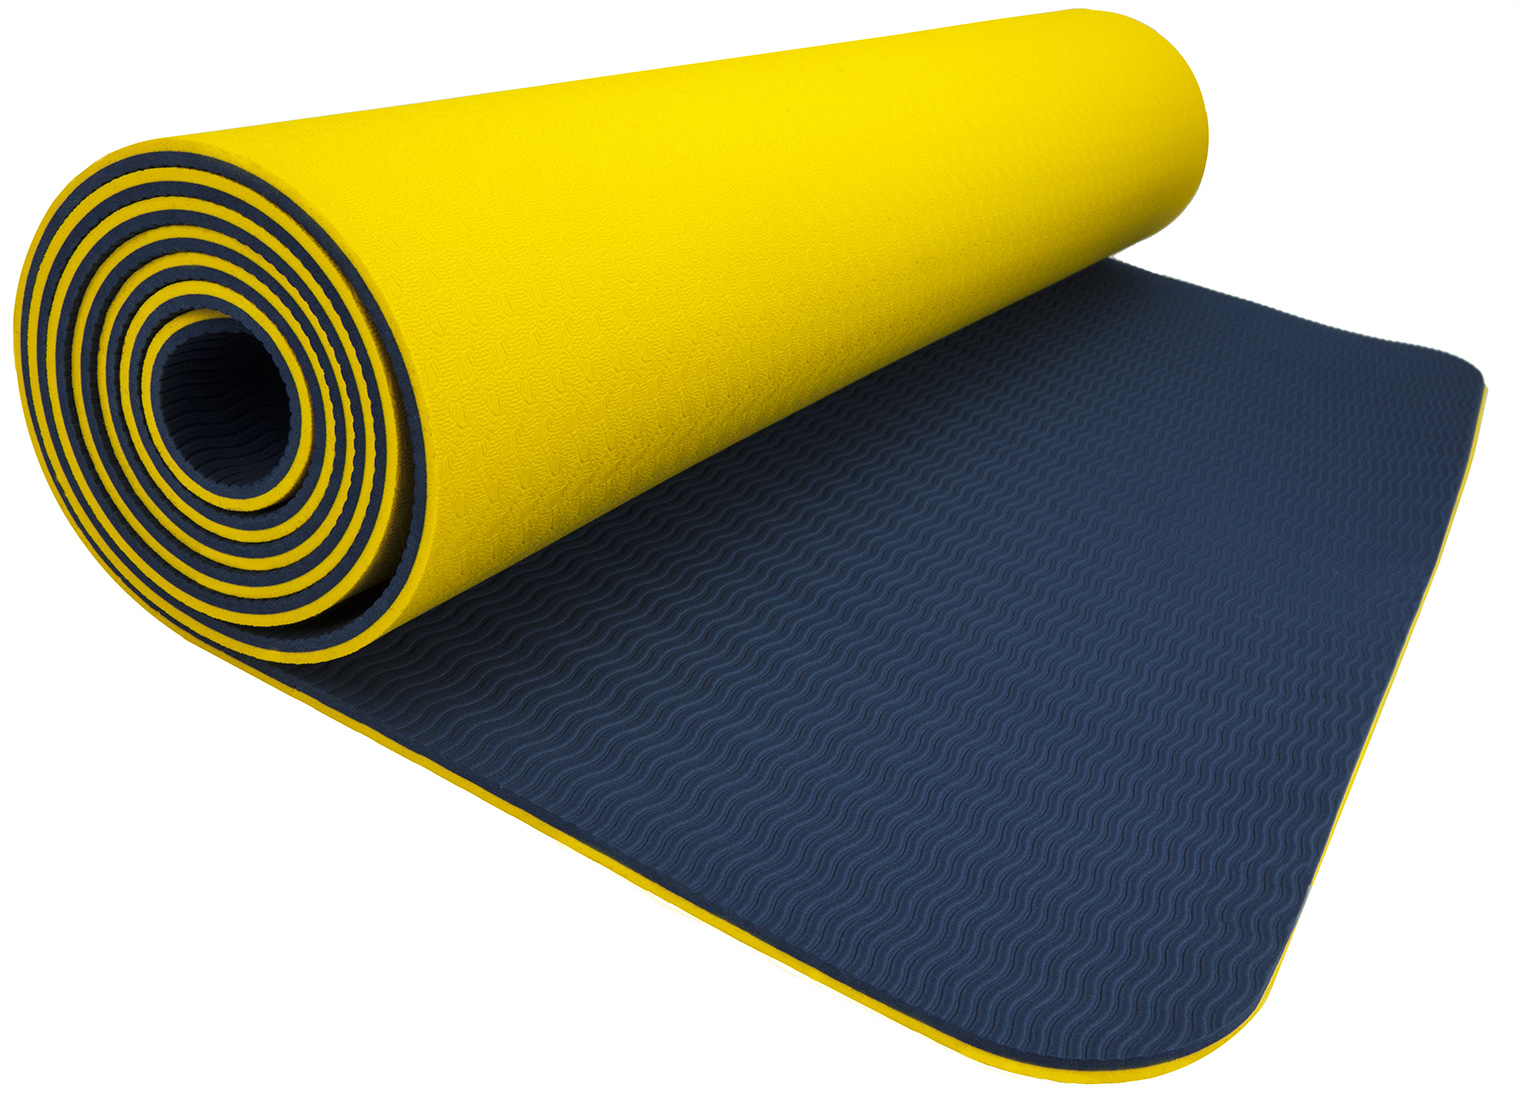 "Wacces TPE Exercise Fitness Yoga Gym Training Premium Mat 72""x 24""x 1 4"" Dual Reversible Non-Slip 6mm (... by"